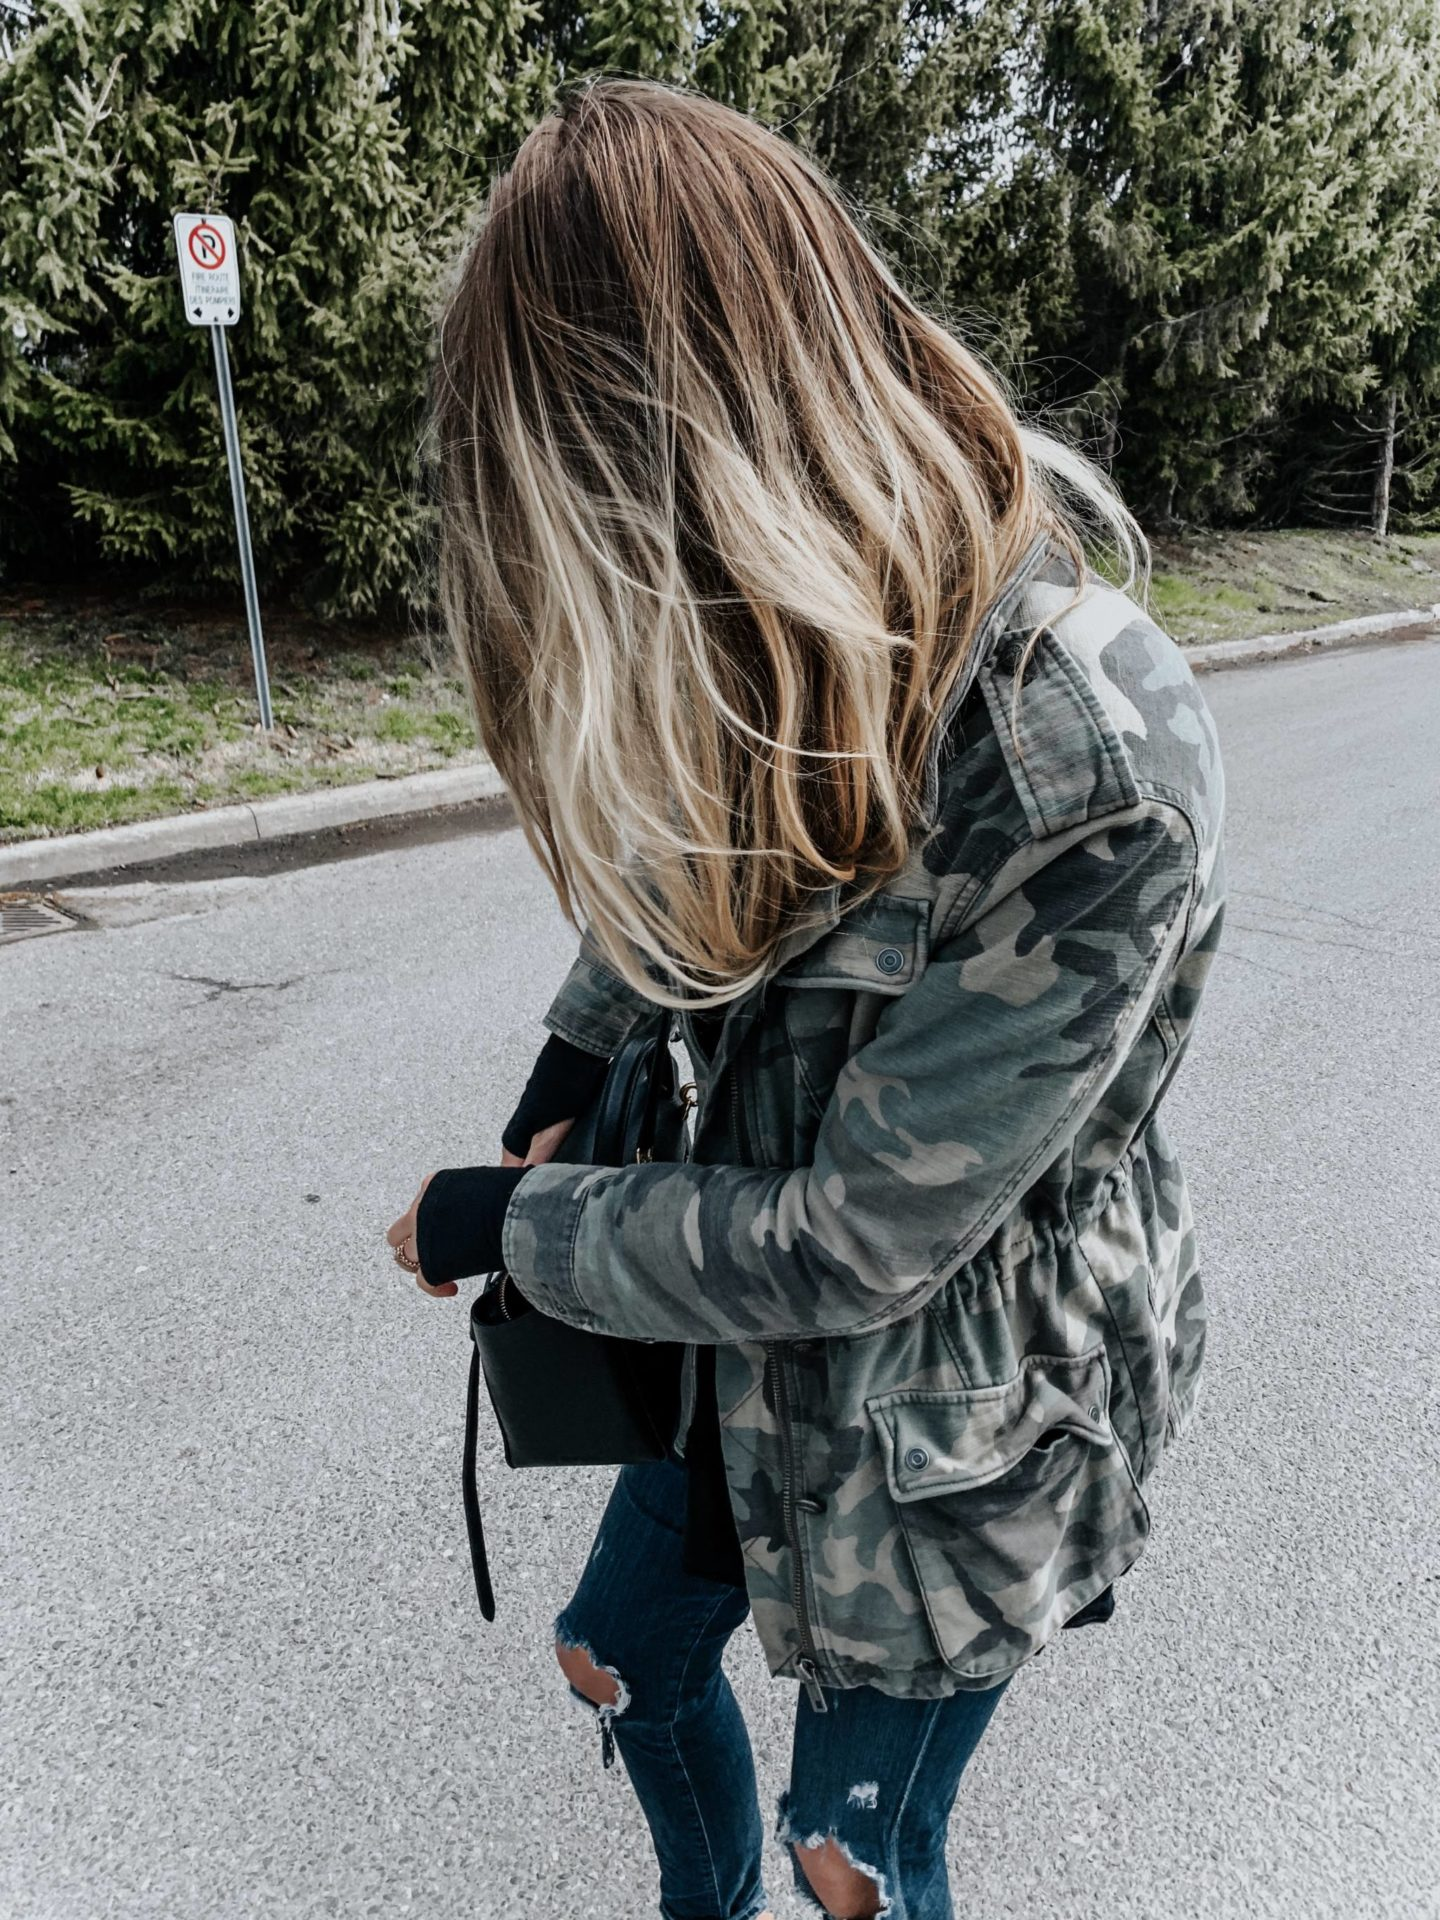 blonde girl wearing camo jacket and sneakers, casual outfit